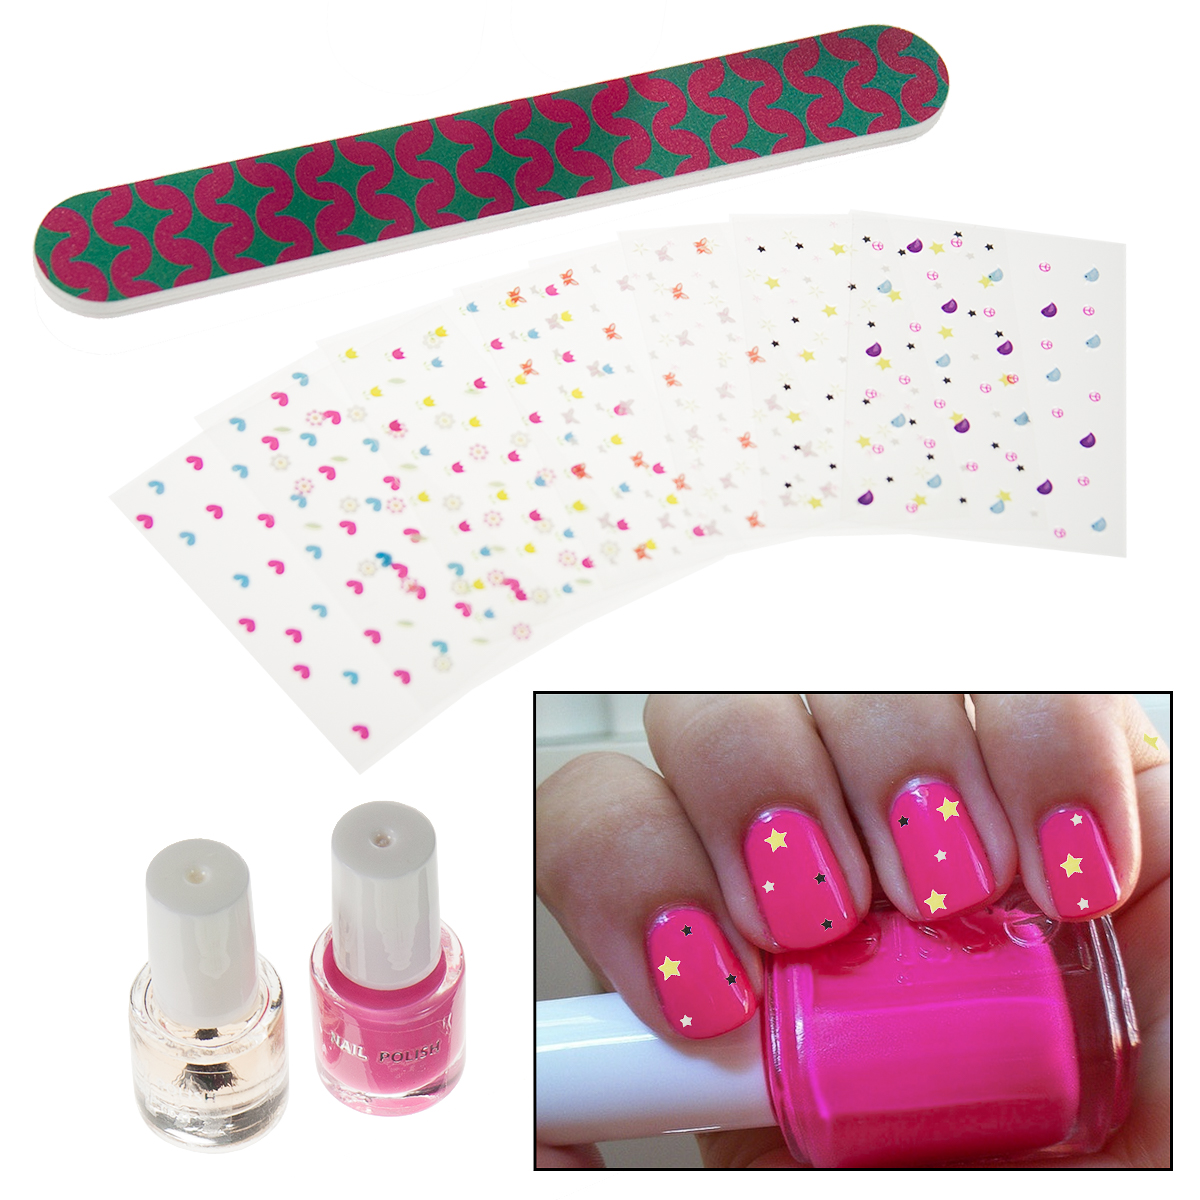 Nail Art Stickers Kit Days Of The Week Designs File For Kids Mani Polish Tools